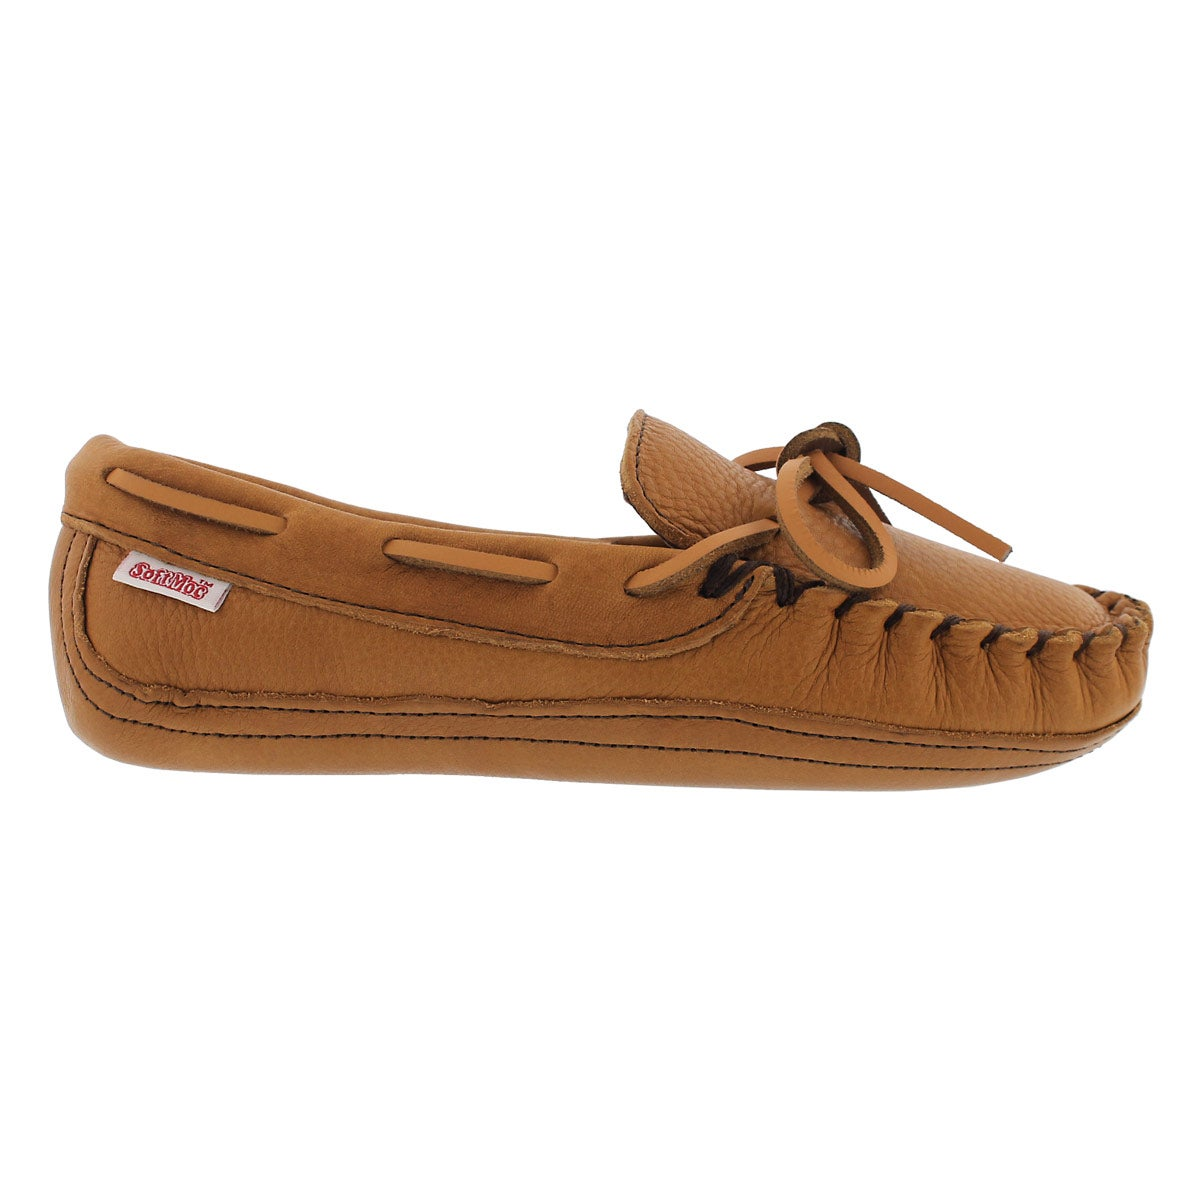 Lds cork lthr moccasin